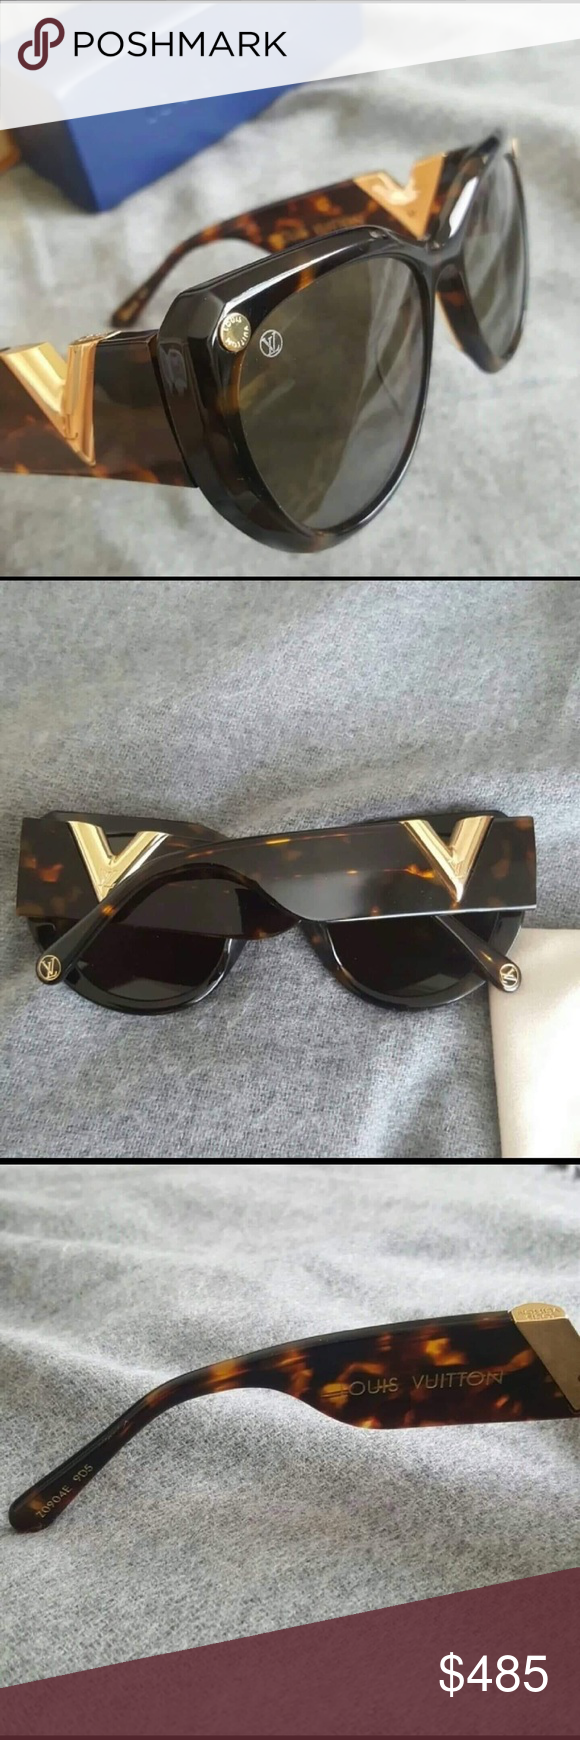 "3635c99799bc4 Authentic Louis Vuitton My Fair Lady Sunglases Stunning pair of Louis  Vuitton "" My Fair Lady"" Sunglasses. The frames are a glossy Translucent  Tortoise with ..."